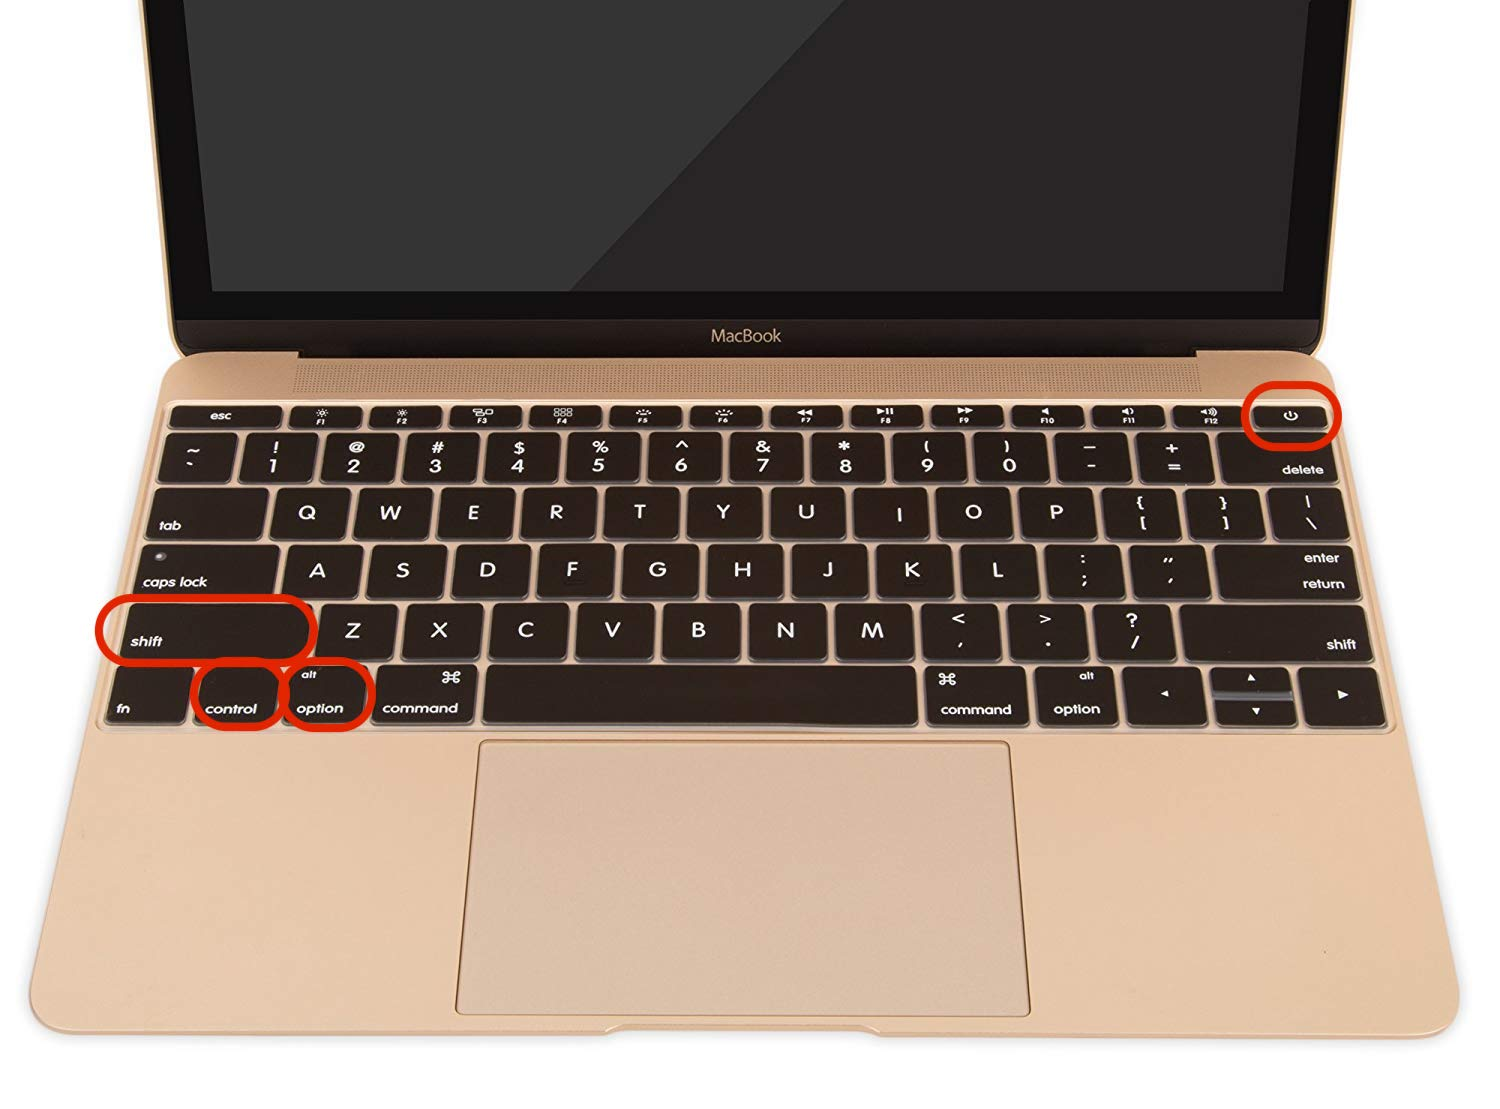 MacBook Running Slow? This Simple Trick Can Speed It up Almost Instantly